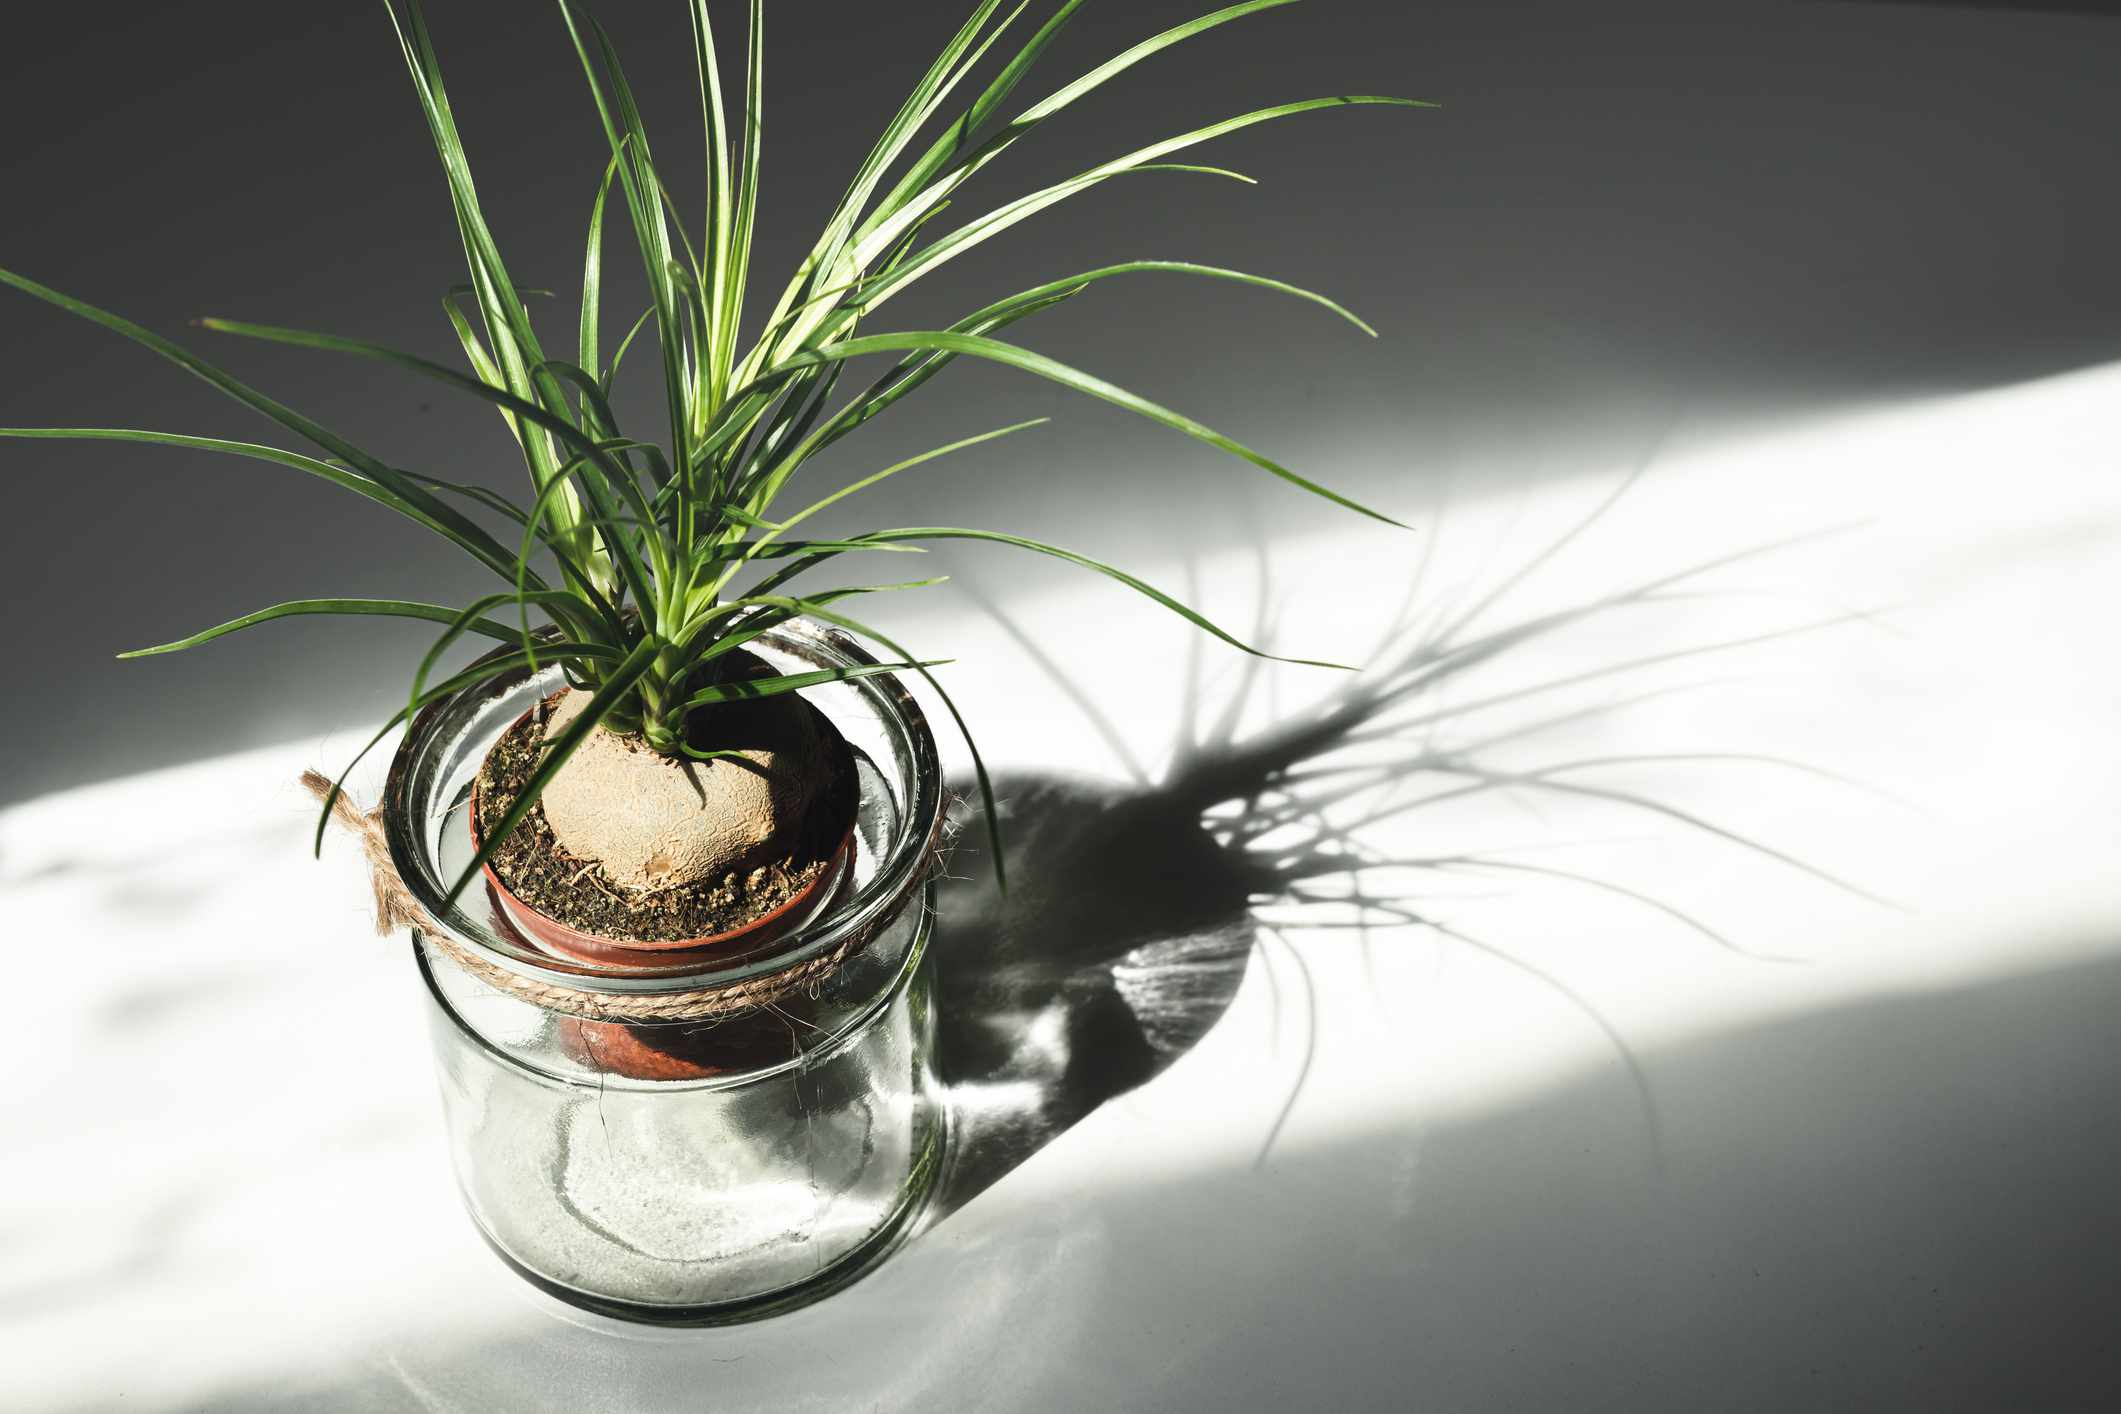 Propagated ponytail palm (Beaucarnea recurvata) offset in glass jar